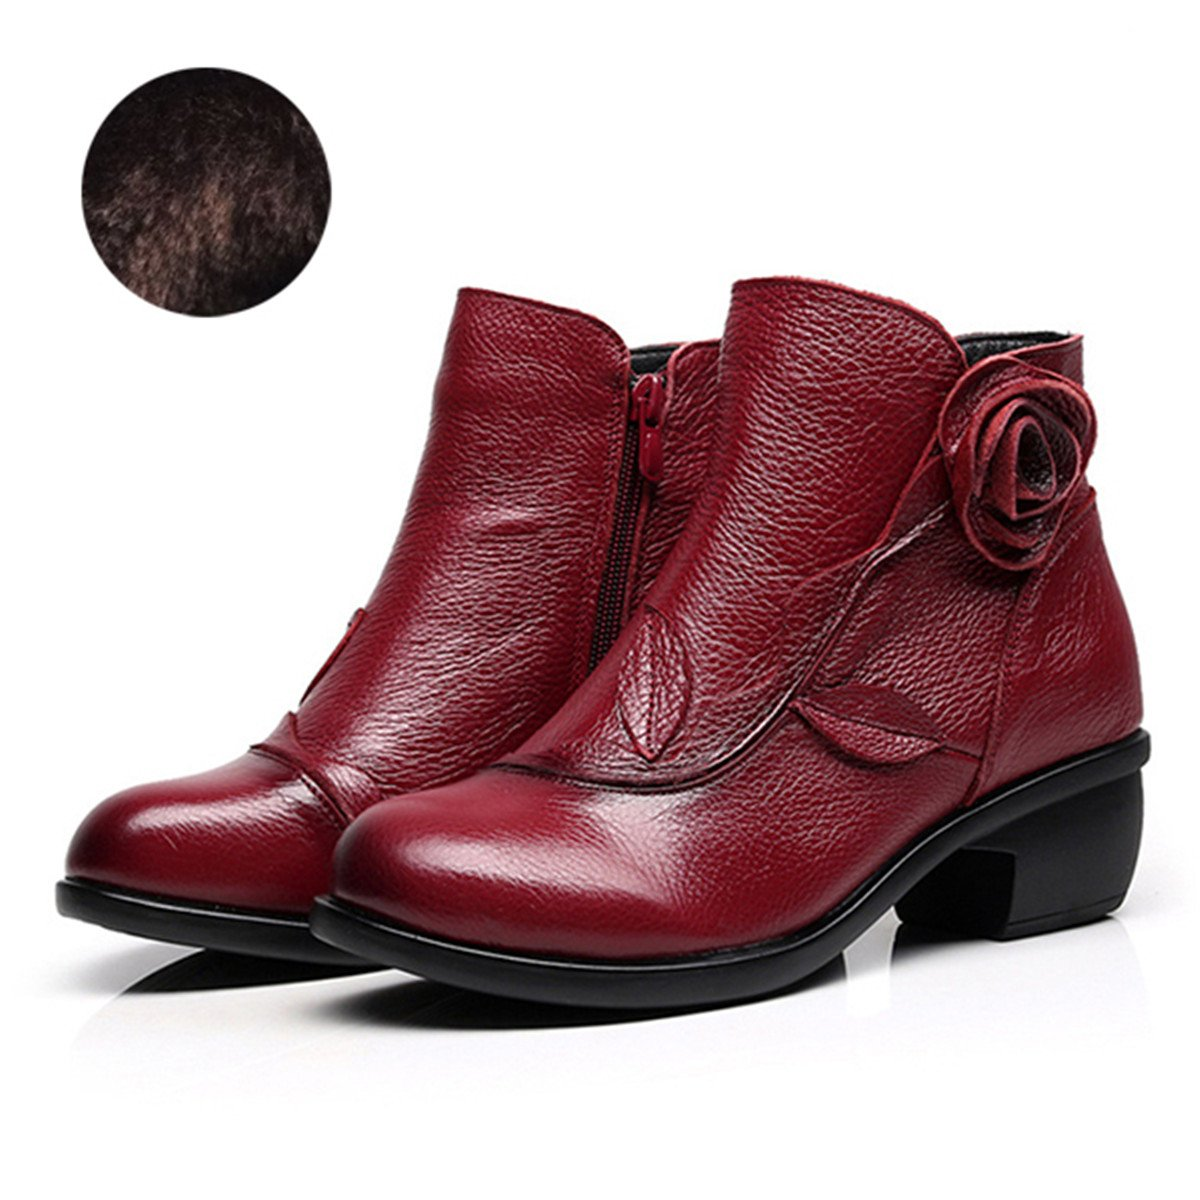 dcdfd296e147 Socofy Leather Ankle Bootie